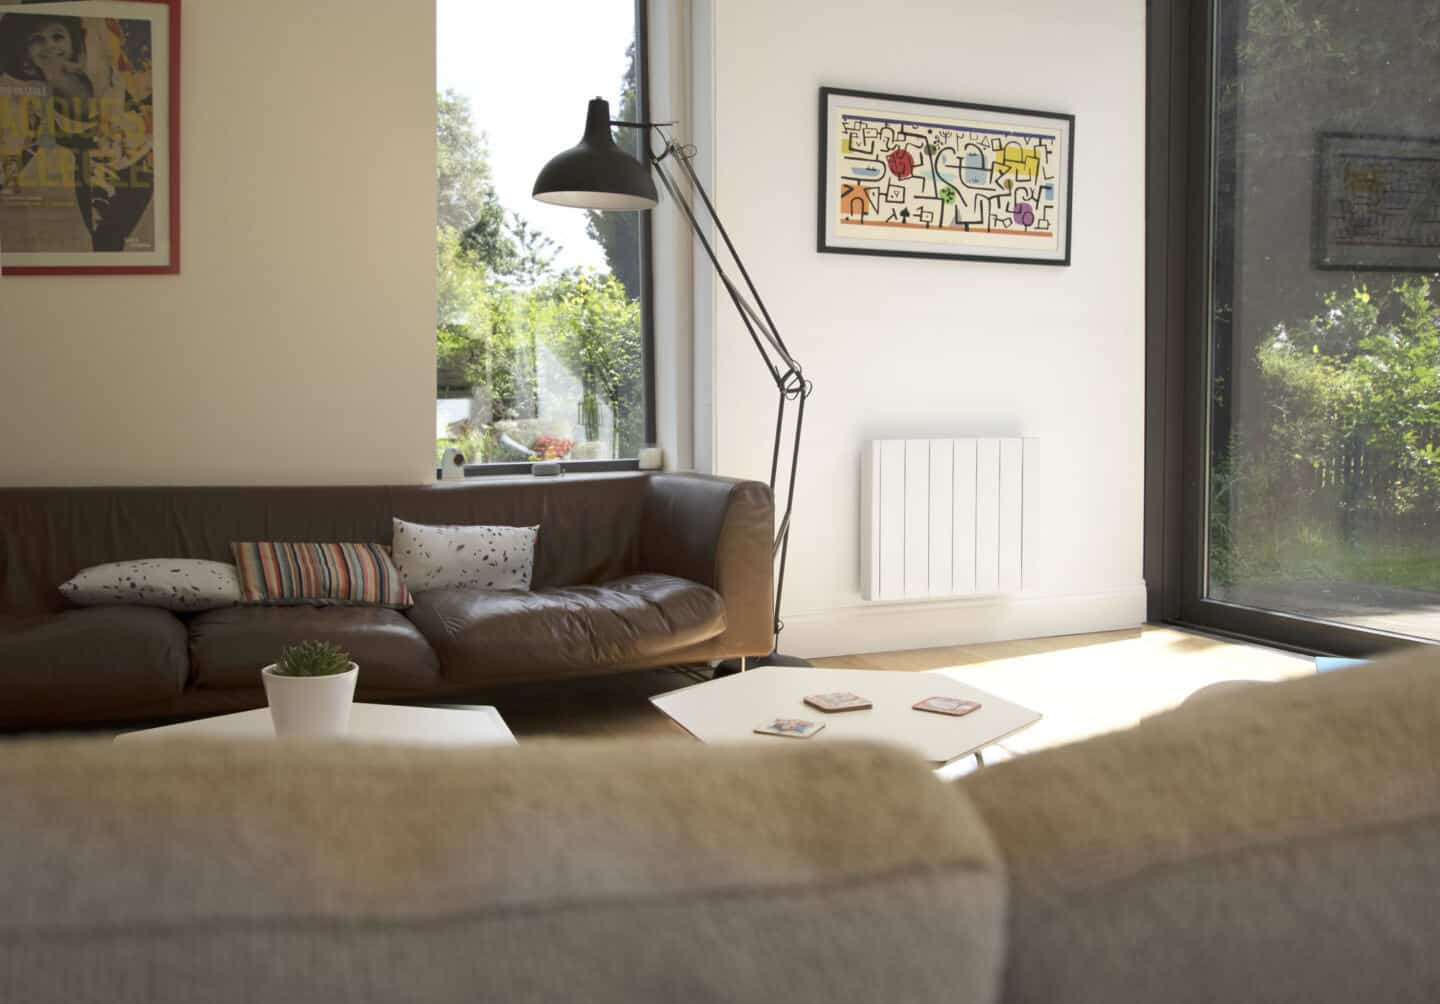 The Ecostrad iQ Ceramic smart electric radiator on a white wall in a modern living room